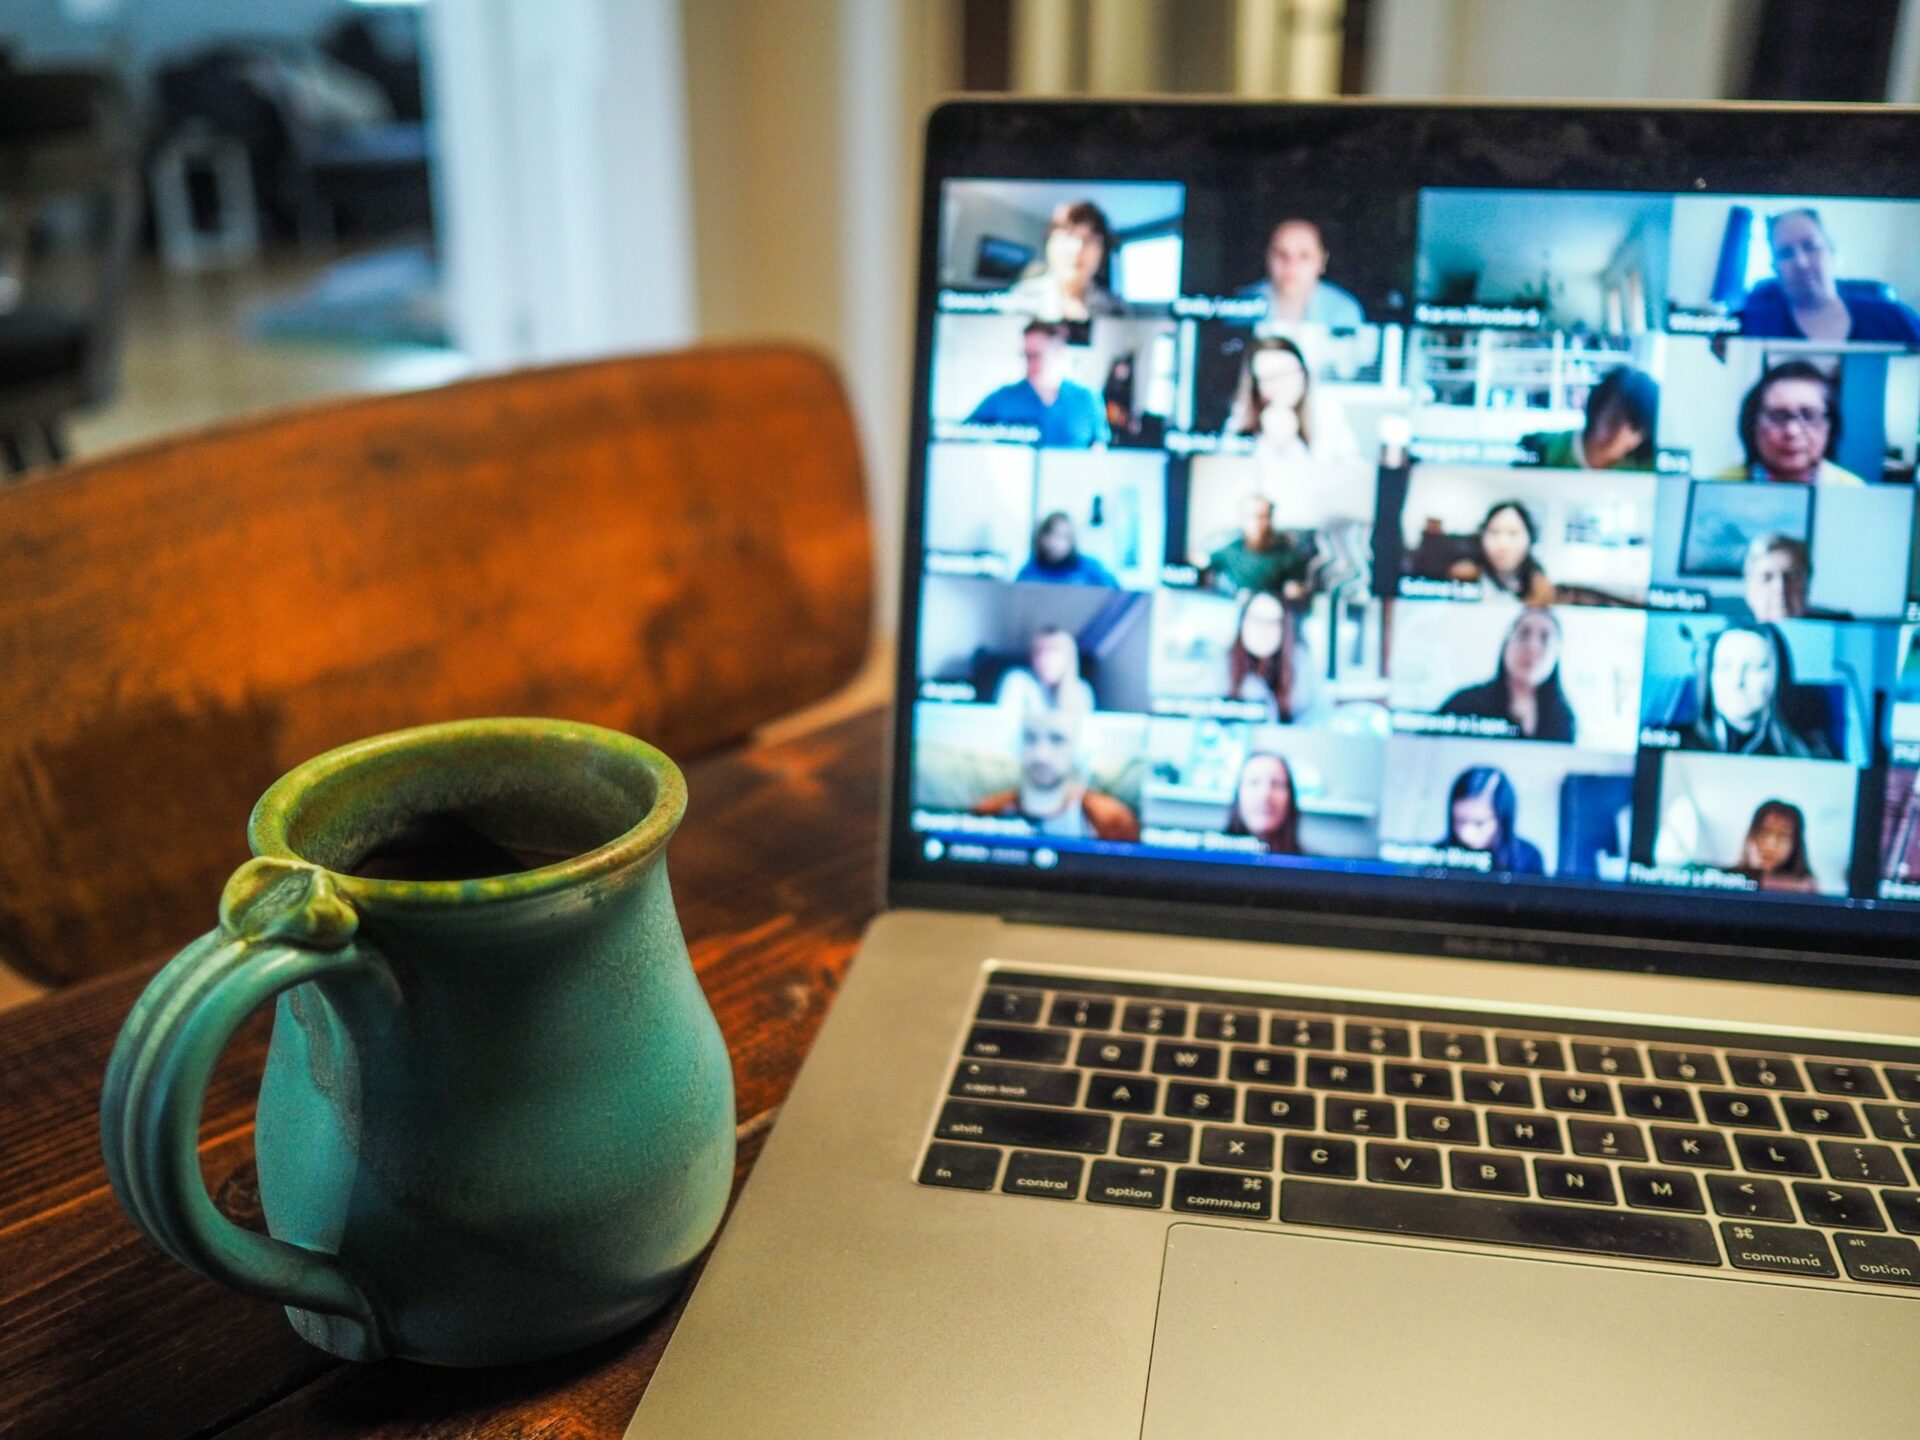 Business Presentations and Live Streaming